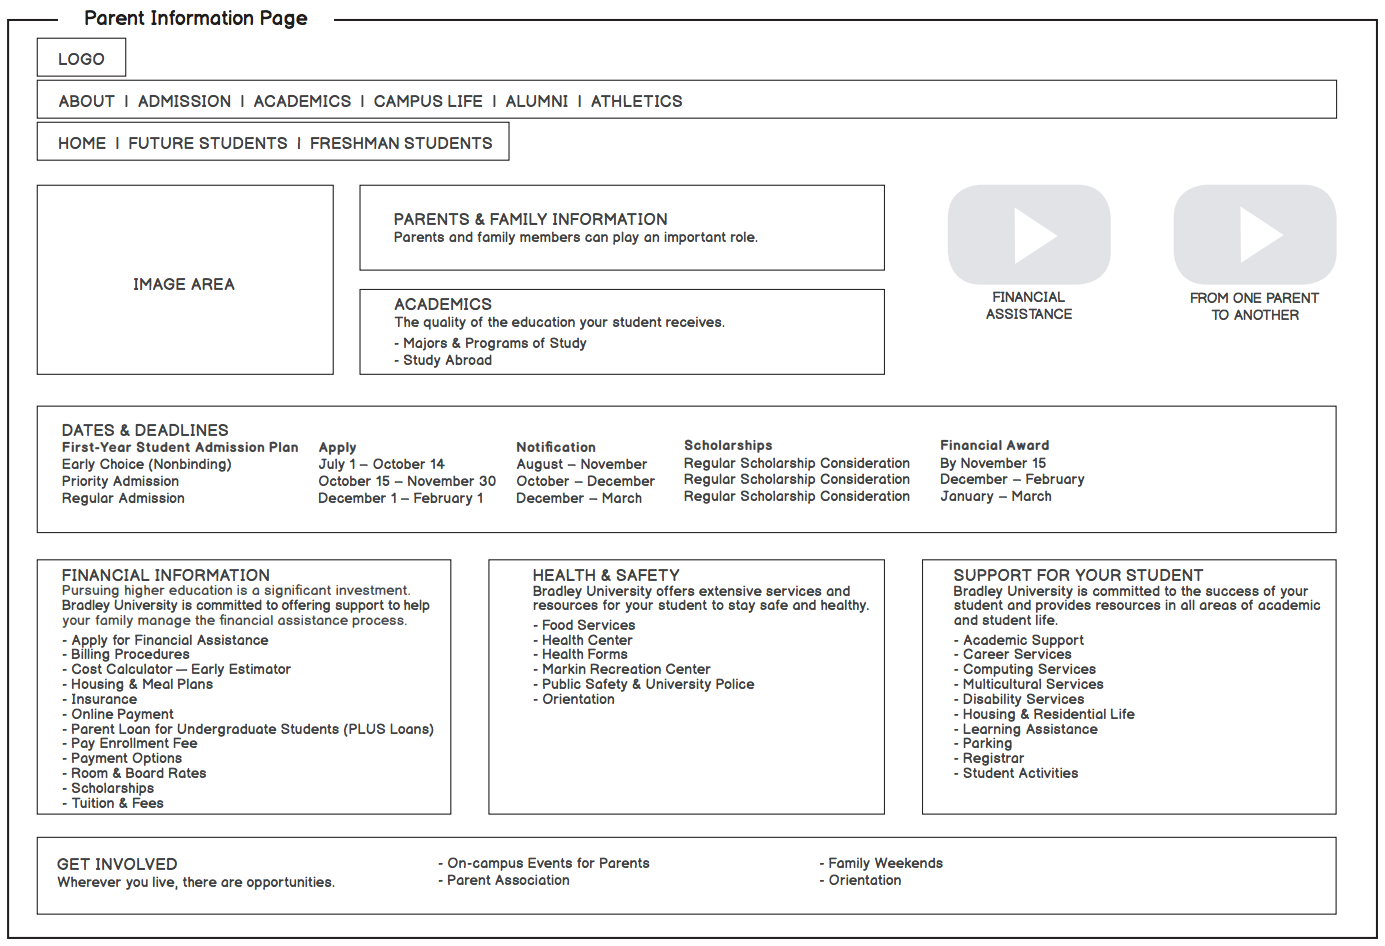 example wireframe for parents information on university website